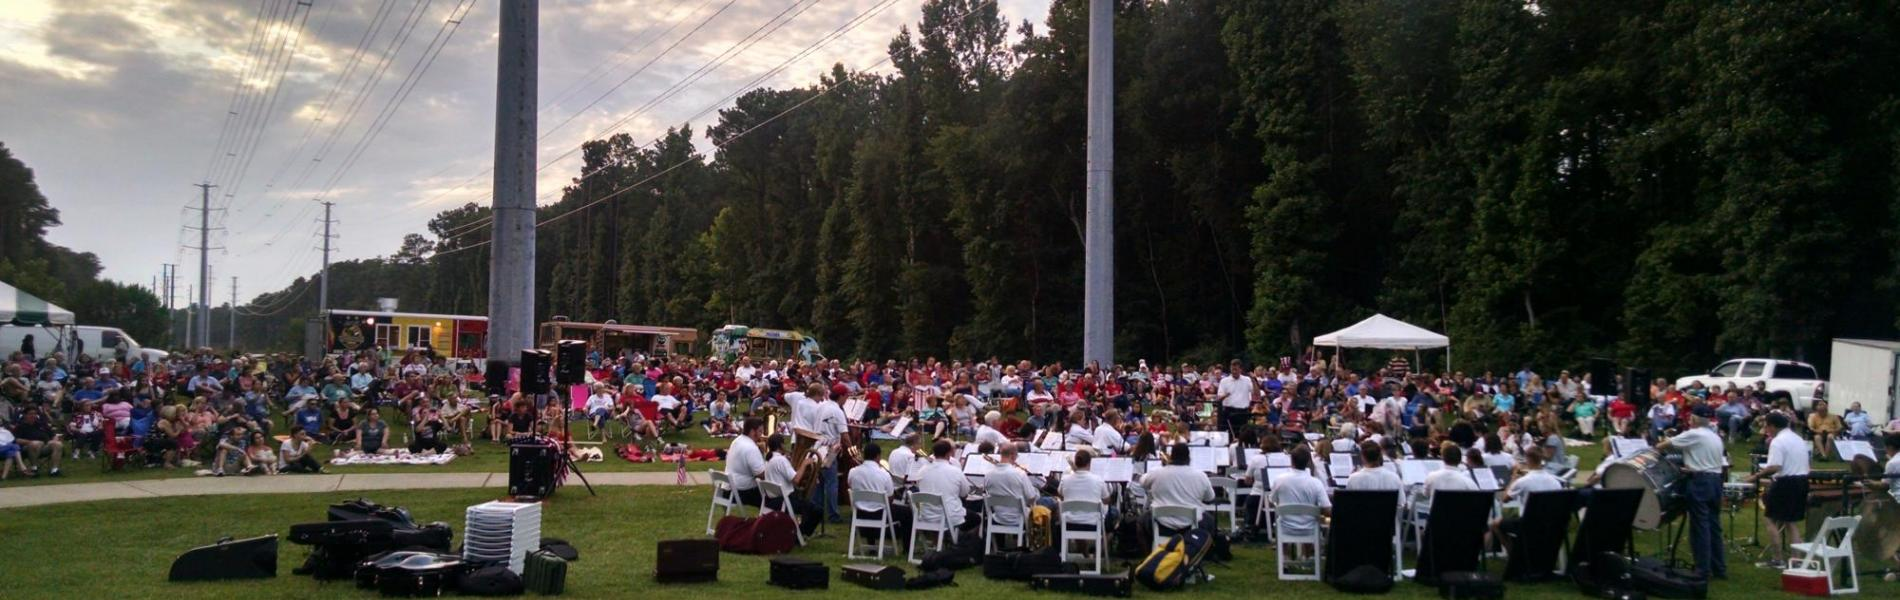 Symphony performance in the park